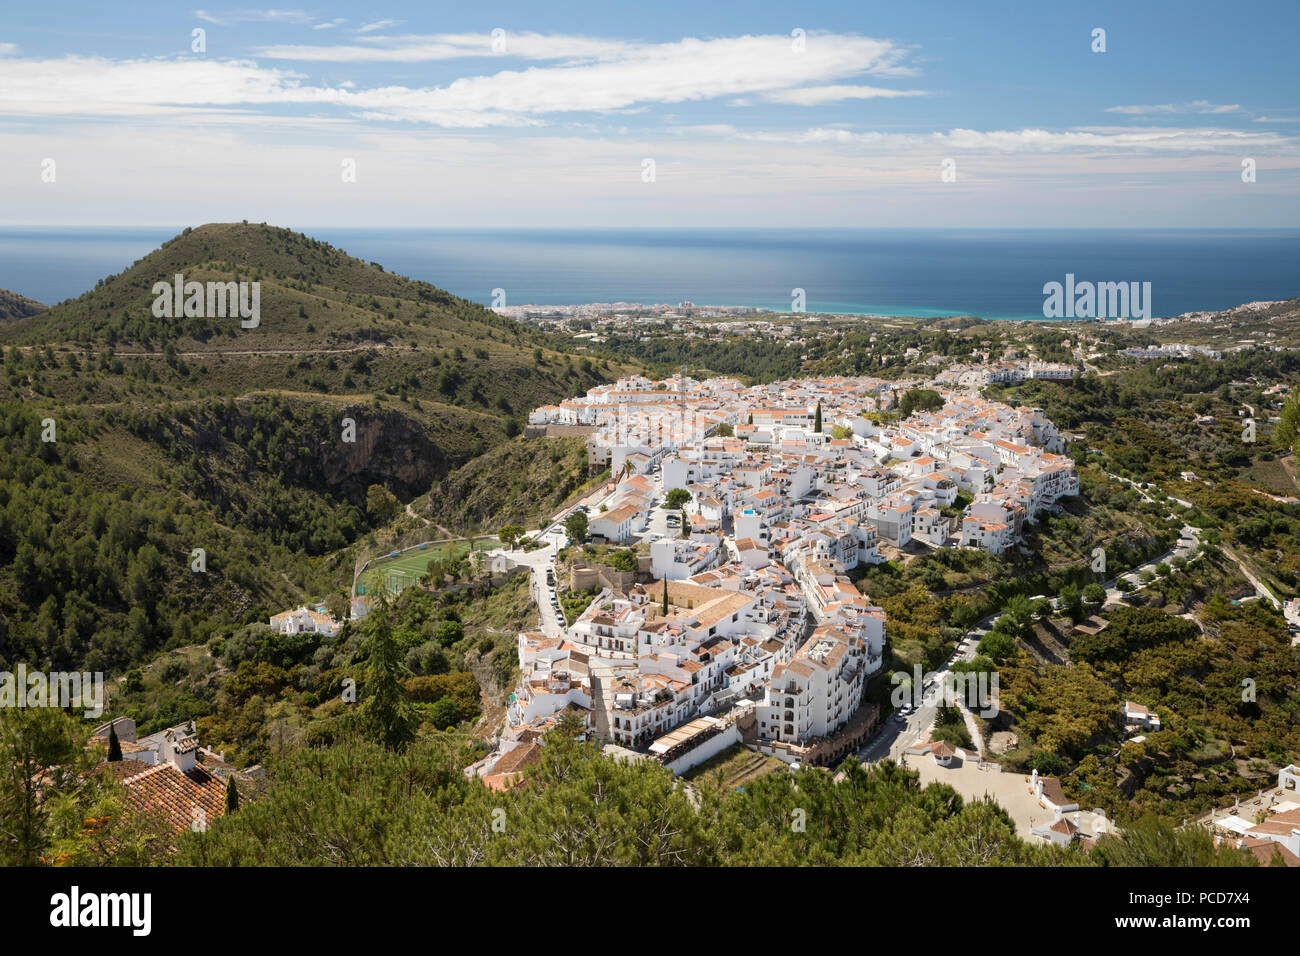 View over white Andalucian village to the sea, Frigiliana, Malaga Province, Costa del Sol, Andalucia, Spain, Europe - Stock Image